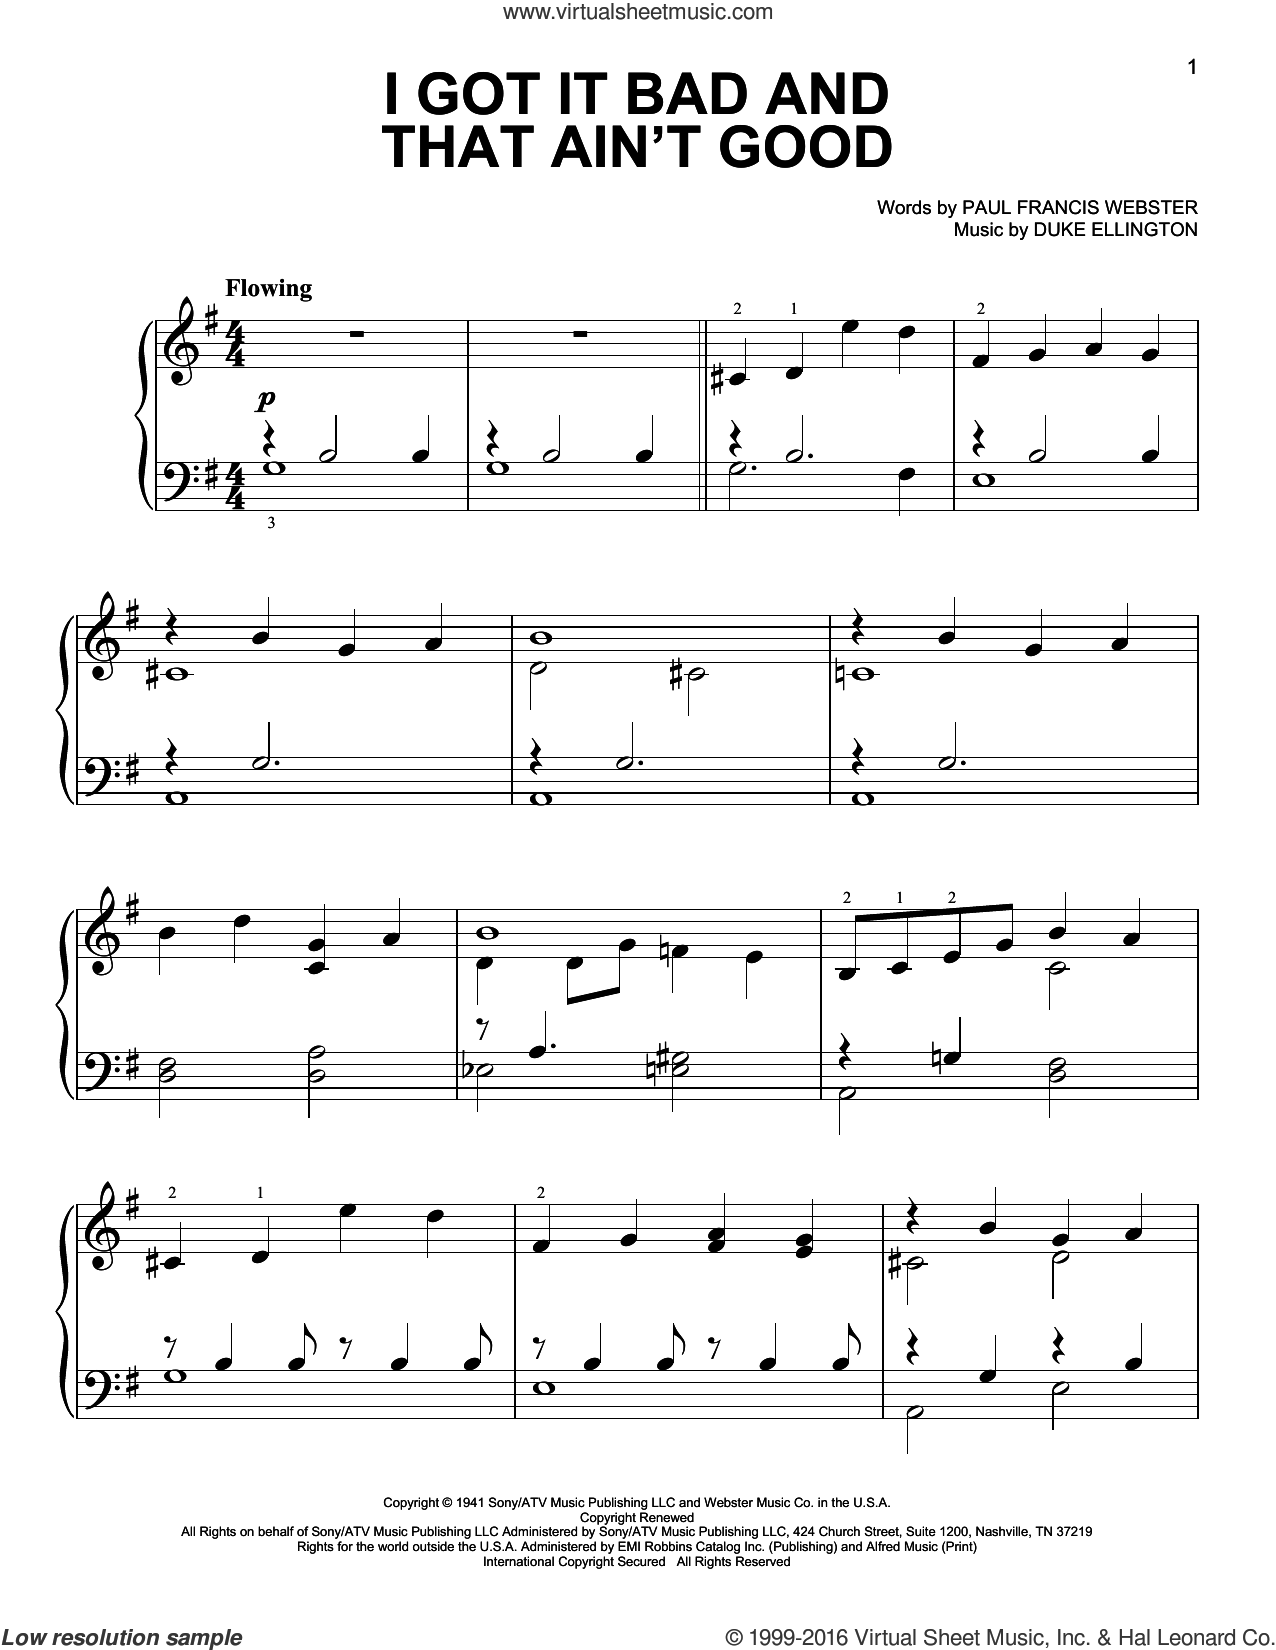 I Got It Bad And That Ain't Good sheet music for piano solo by Paul Francis Webster and Duke Ellington, easy skill level